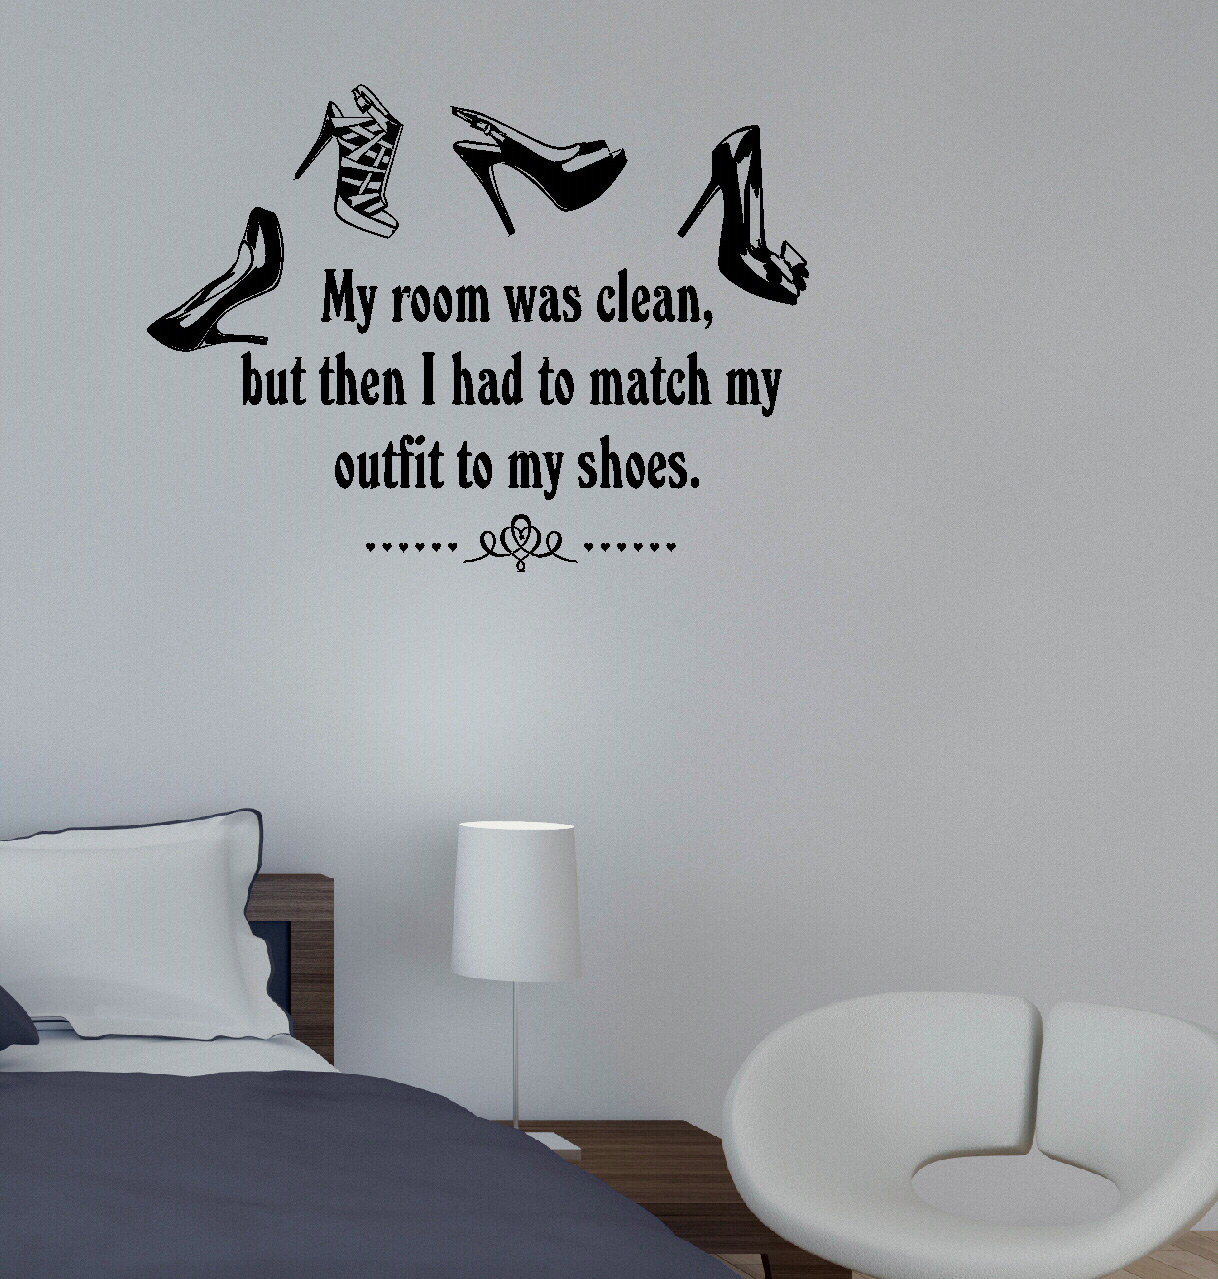 Match My Outfit to My Shoes, Room Mess - Funny Bedroom Wall Decal Quote